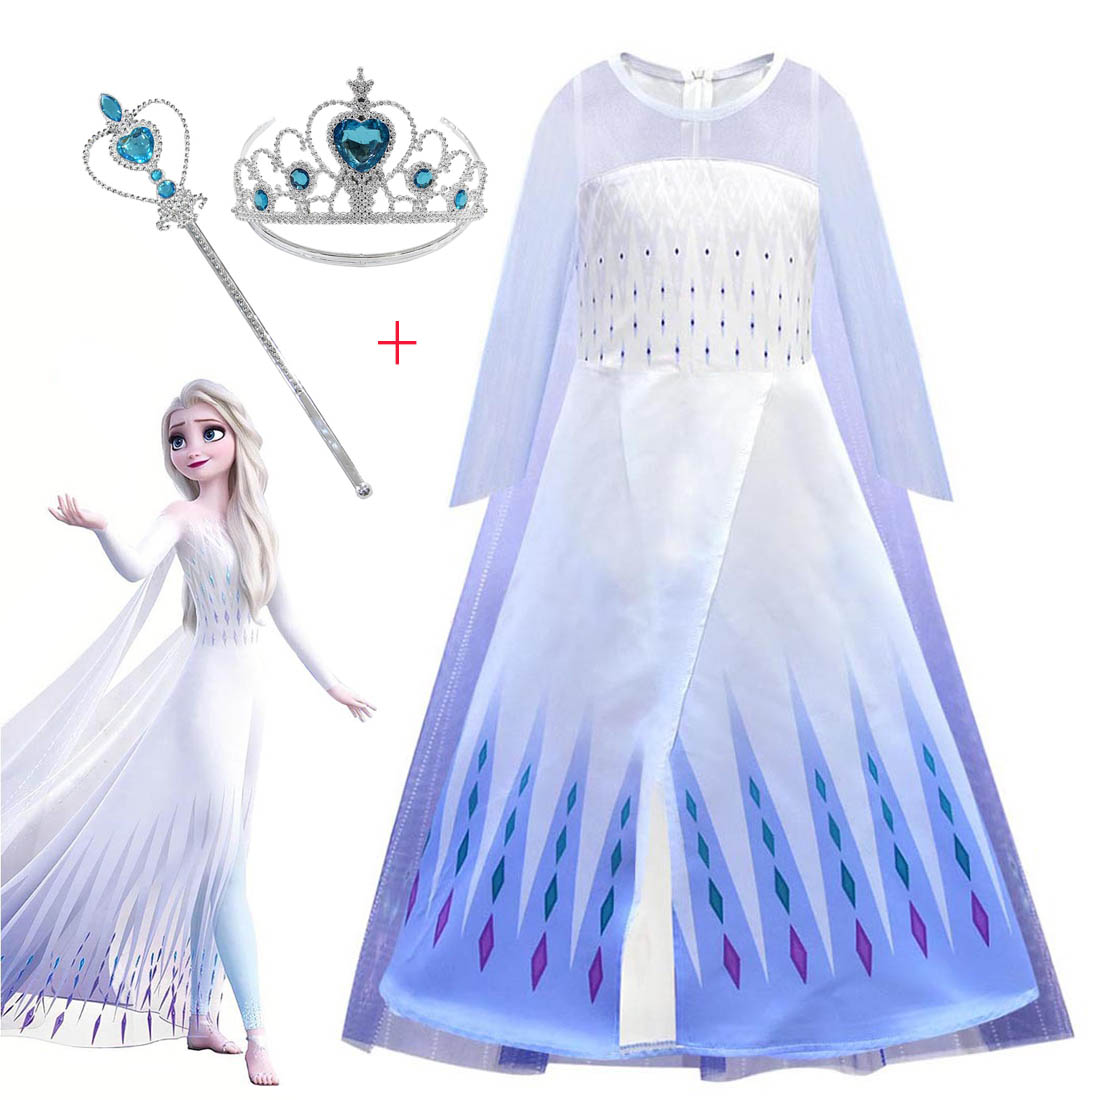 Frozen 2 Elsa Dress Kids Dresses For Girs Anna Cosplay Costume Toddler Carnival Birthday Party Princess Dress For Girl Clothing